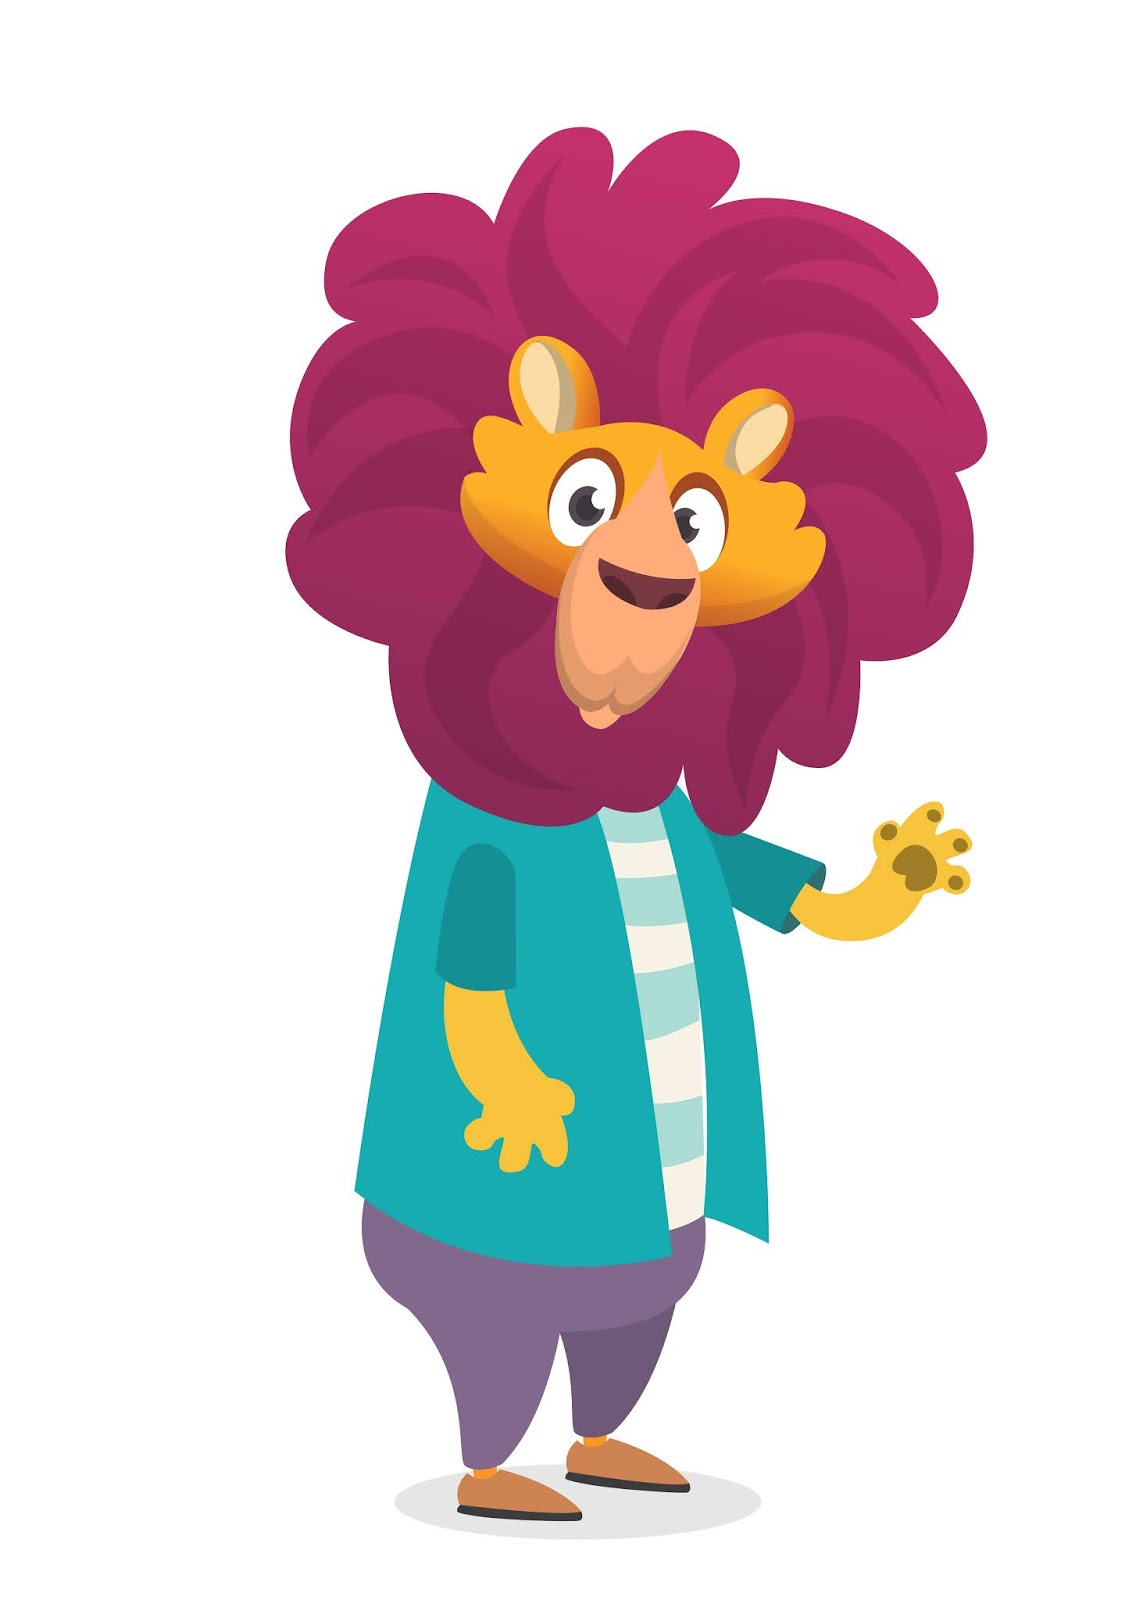 Cartoon Funny Lion Illustration Free Download Vector CDR, AI, EPS and PNG Formats